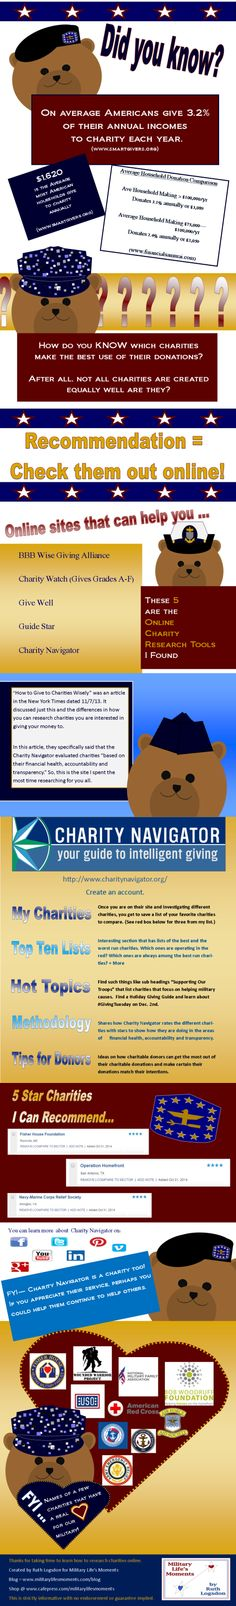 Do your charitable donations work as hard as you do? Find out which charities work the best at giving the most of your donations to the cause you intend ... from my latest blog post @ www.militarylifesmoments.com/blog/